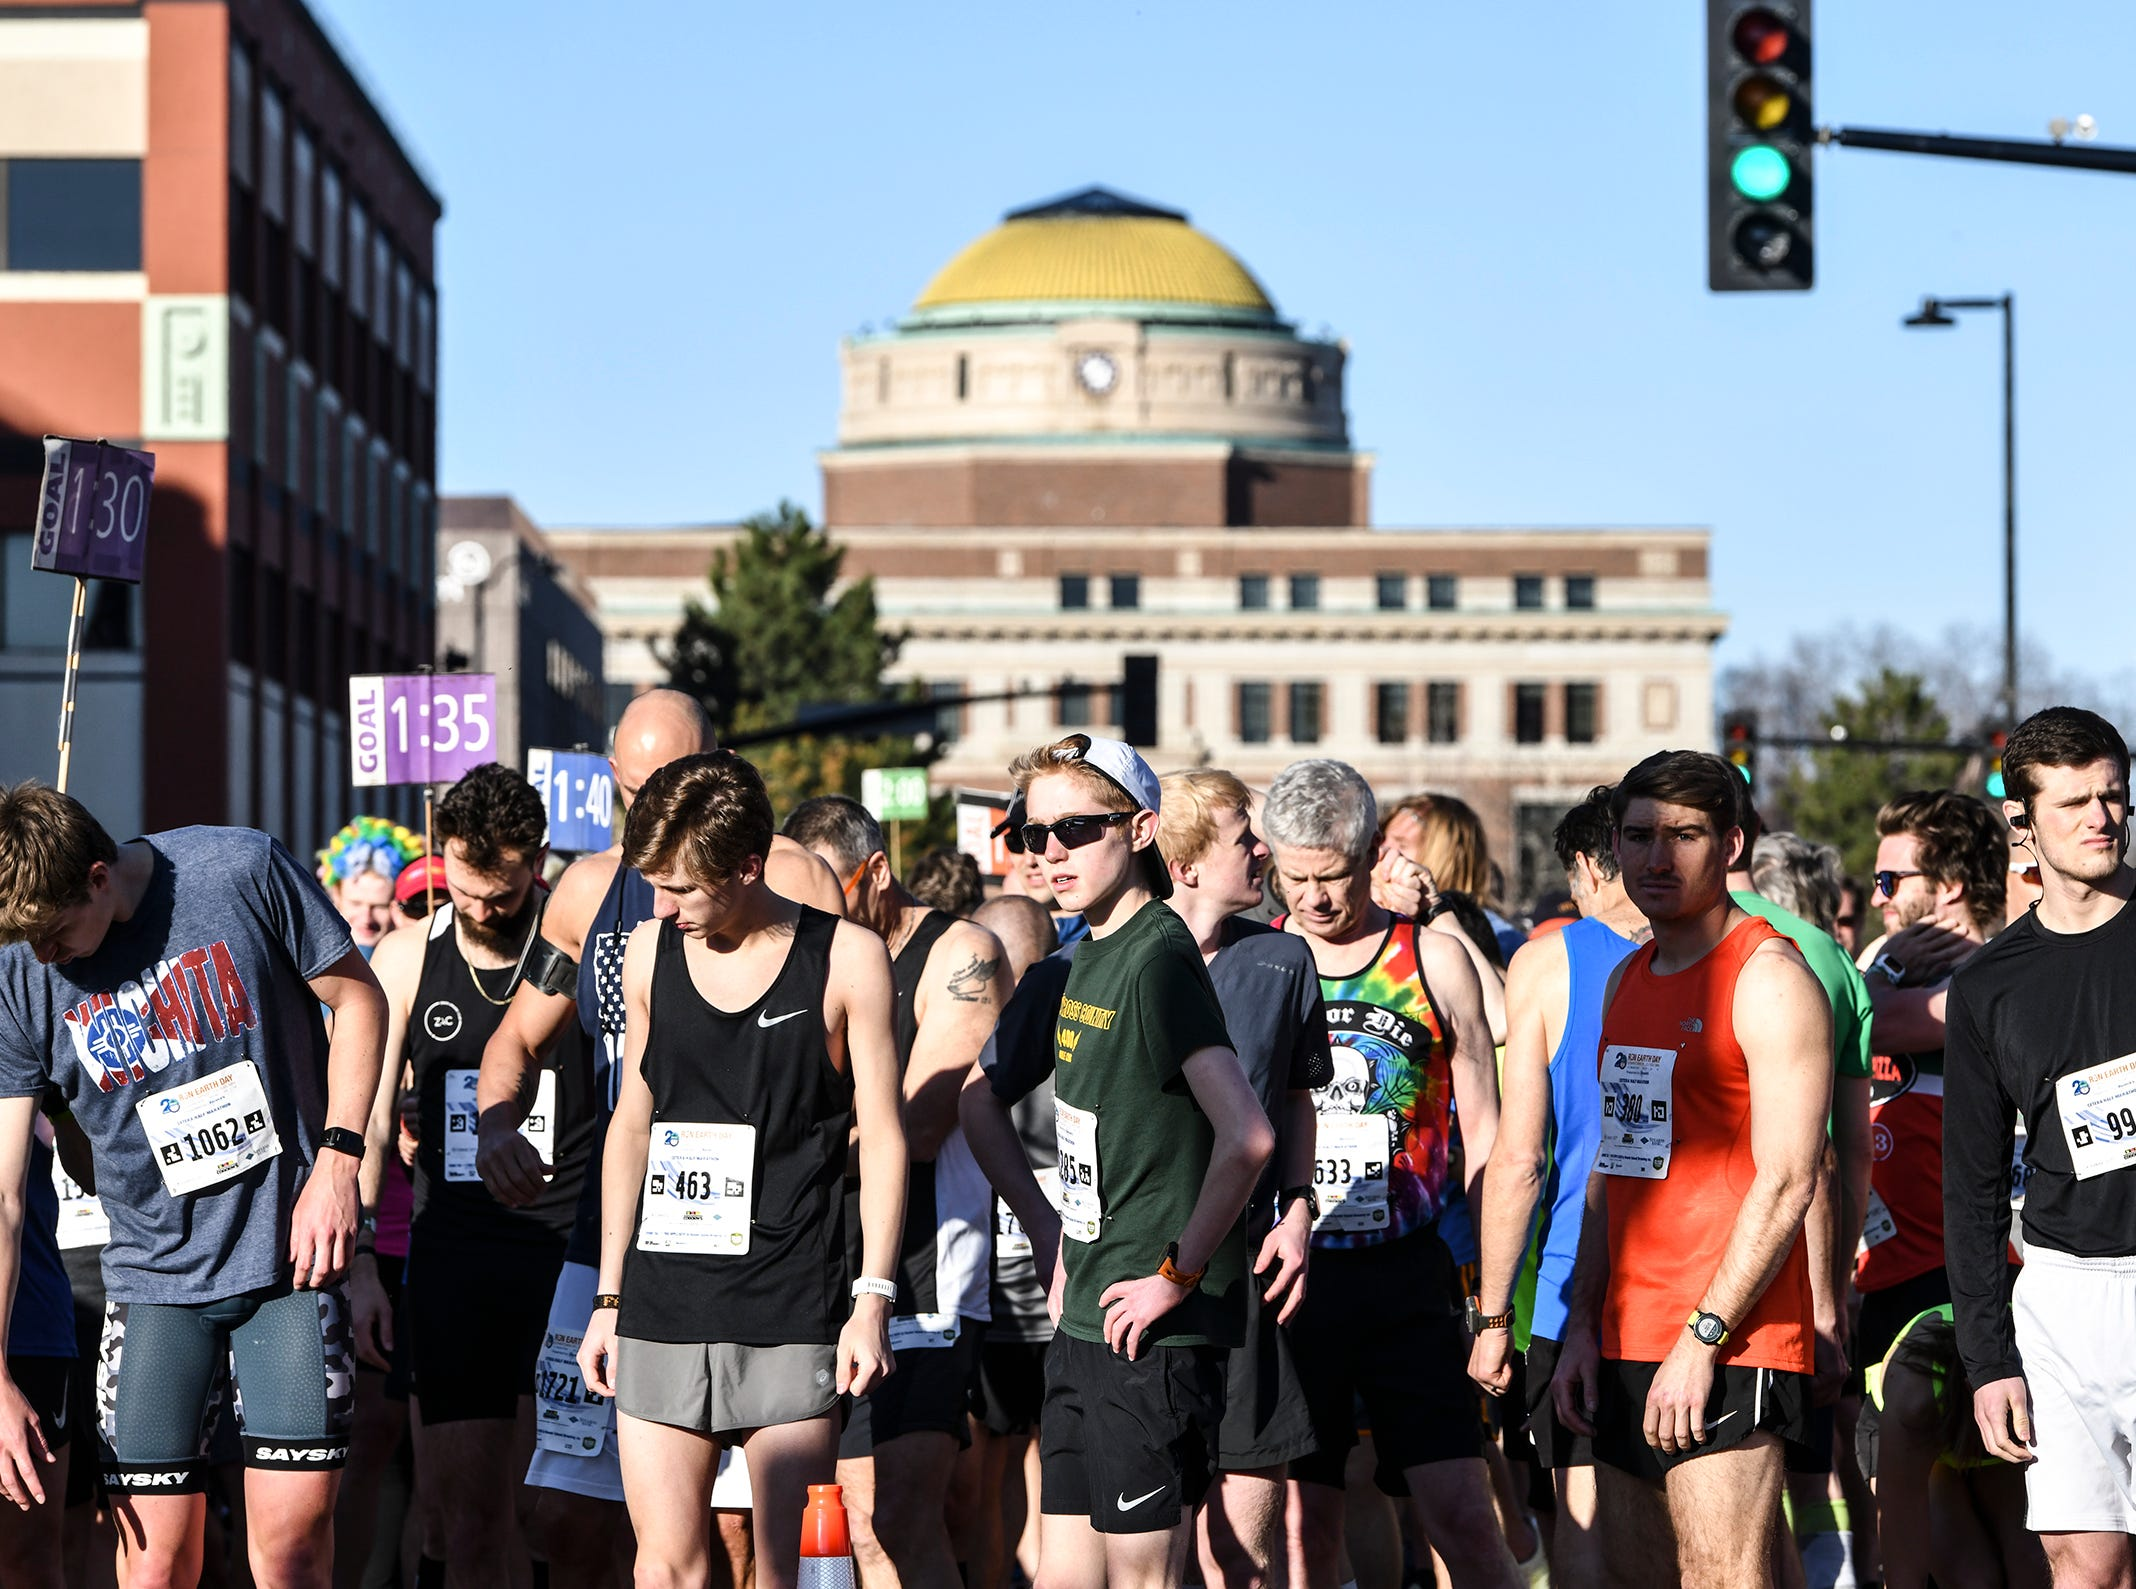 Runners prepare for the of the Cetera Half Marathon Saturday, April 20, in downtown St. Cloud.